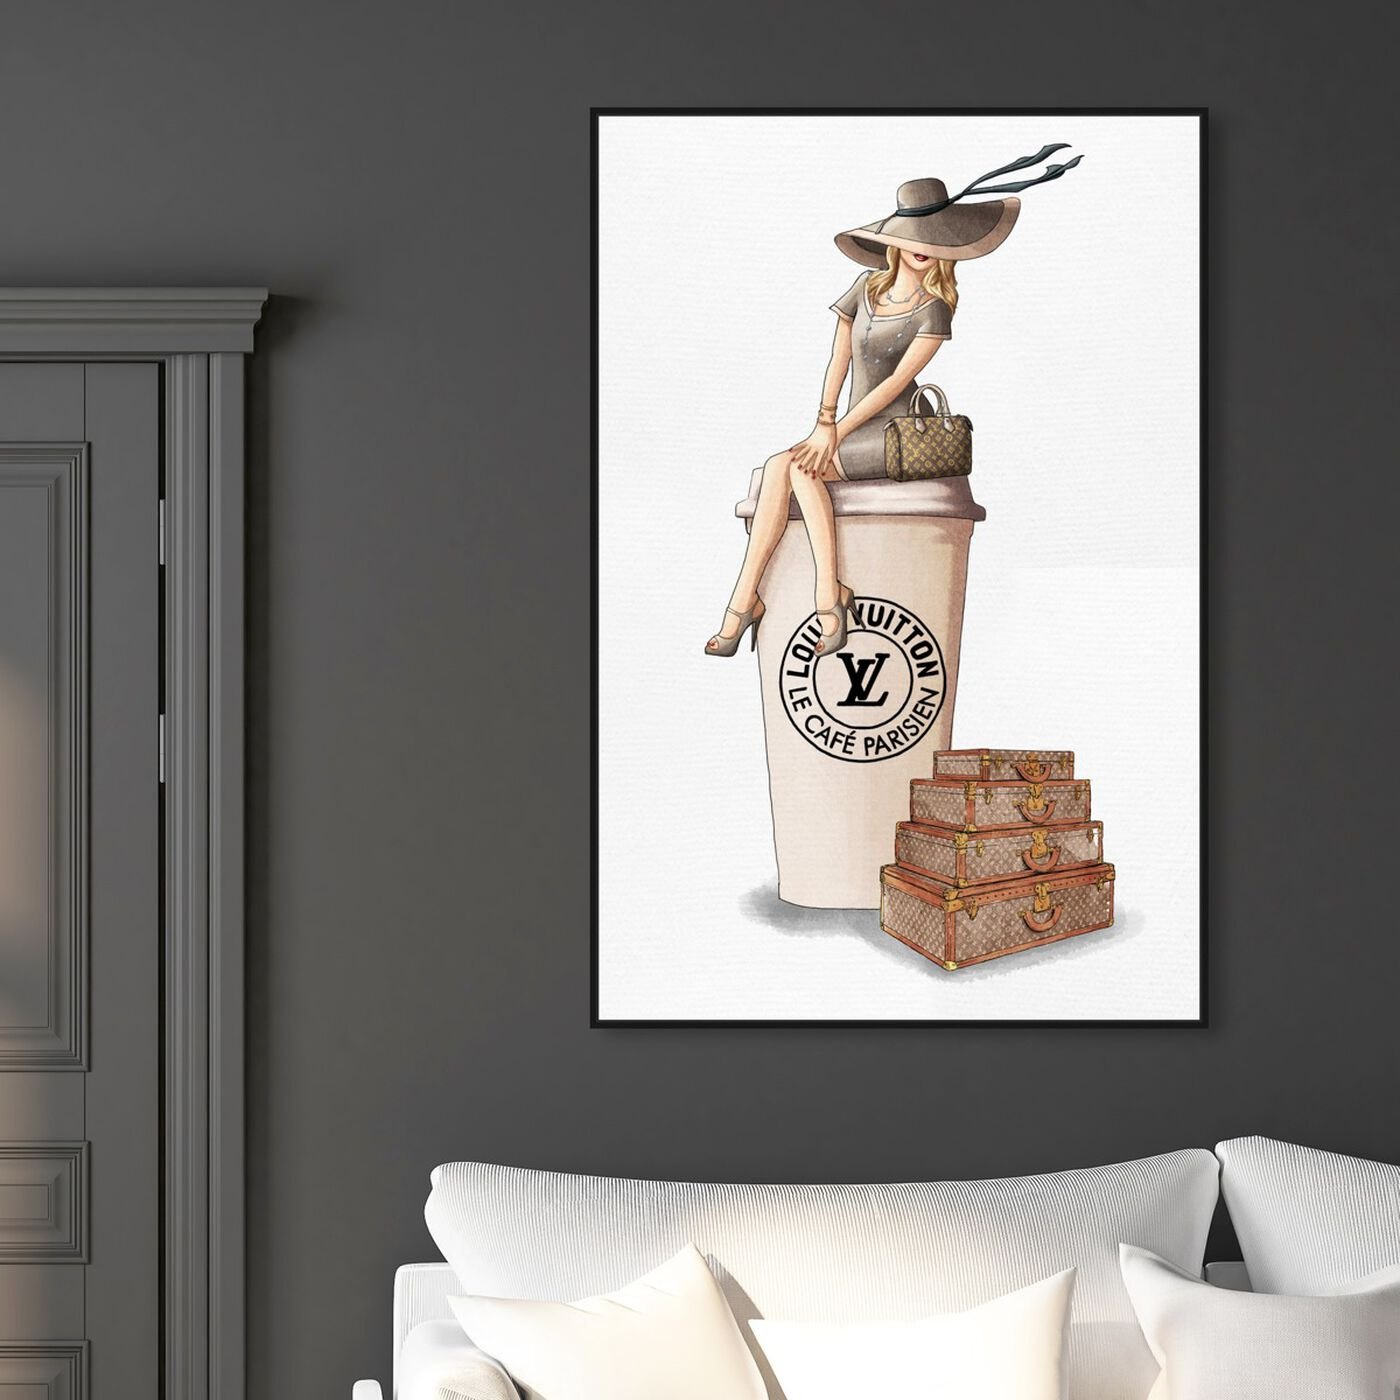 Hanging view of Cafe au Lait Paris featuring fashion and glam and handbags art.